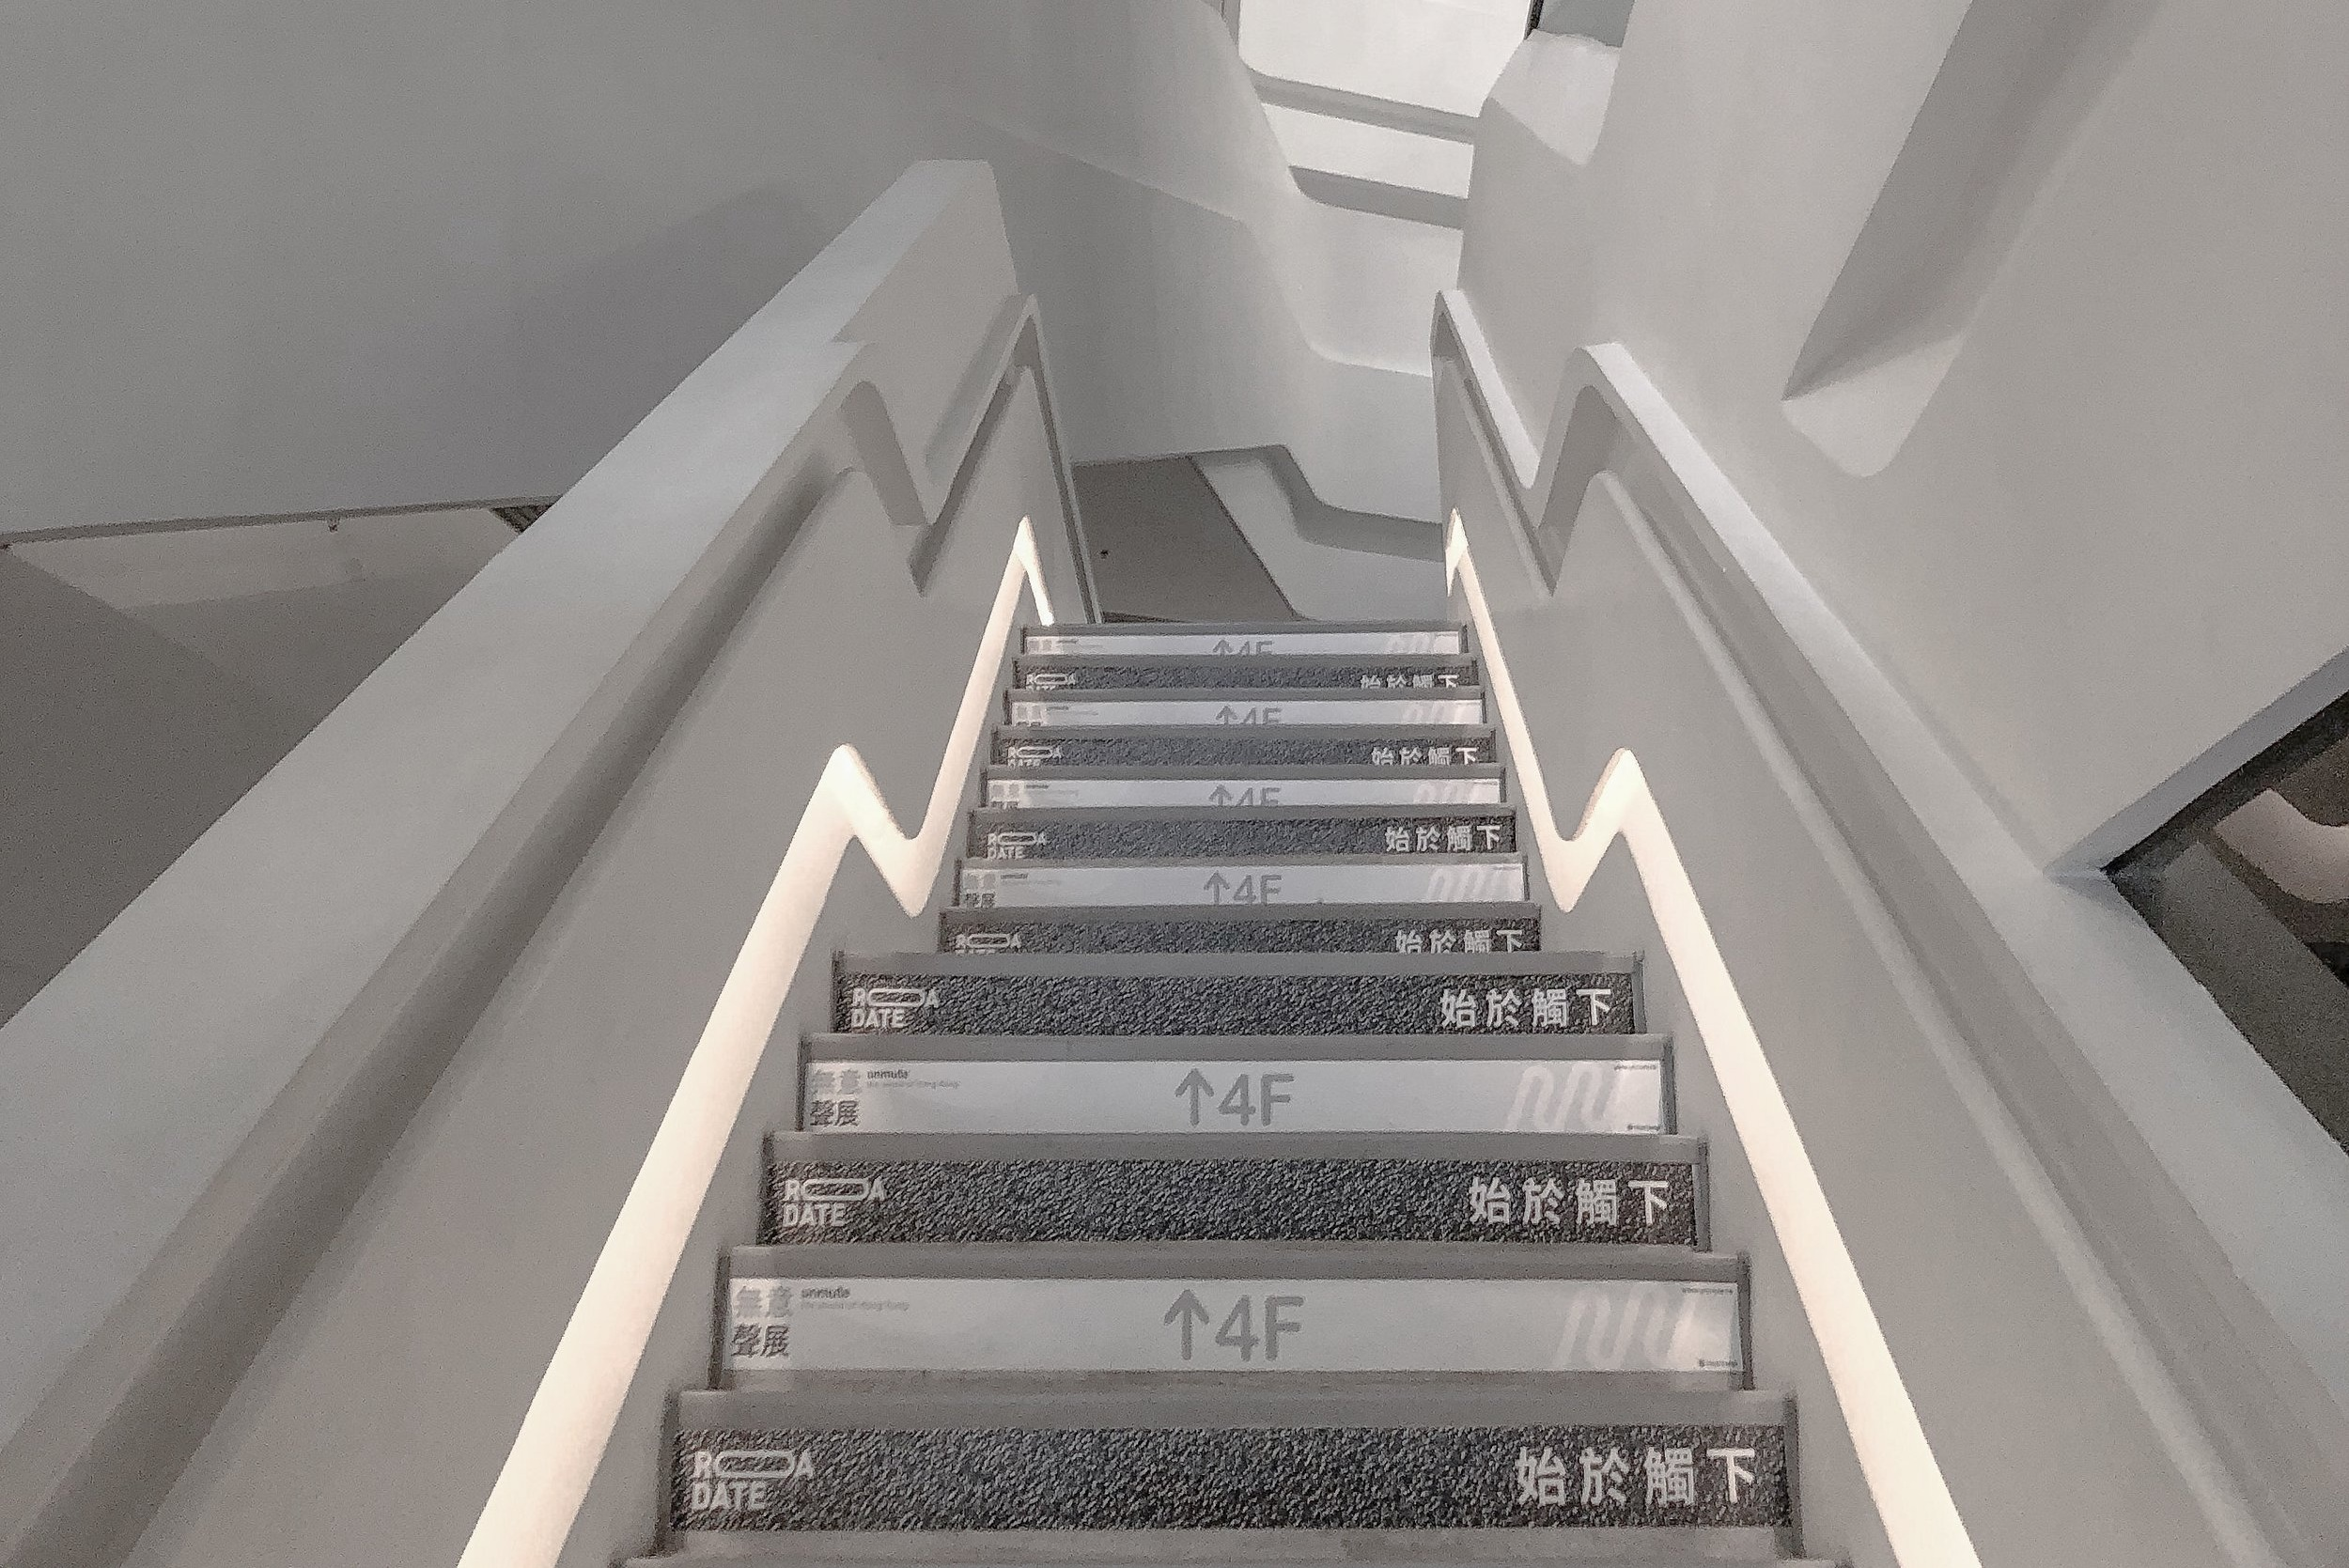 ▴ Staircase way-finding installations